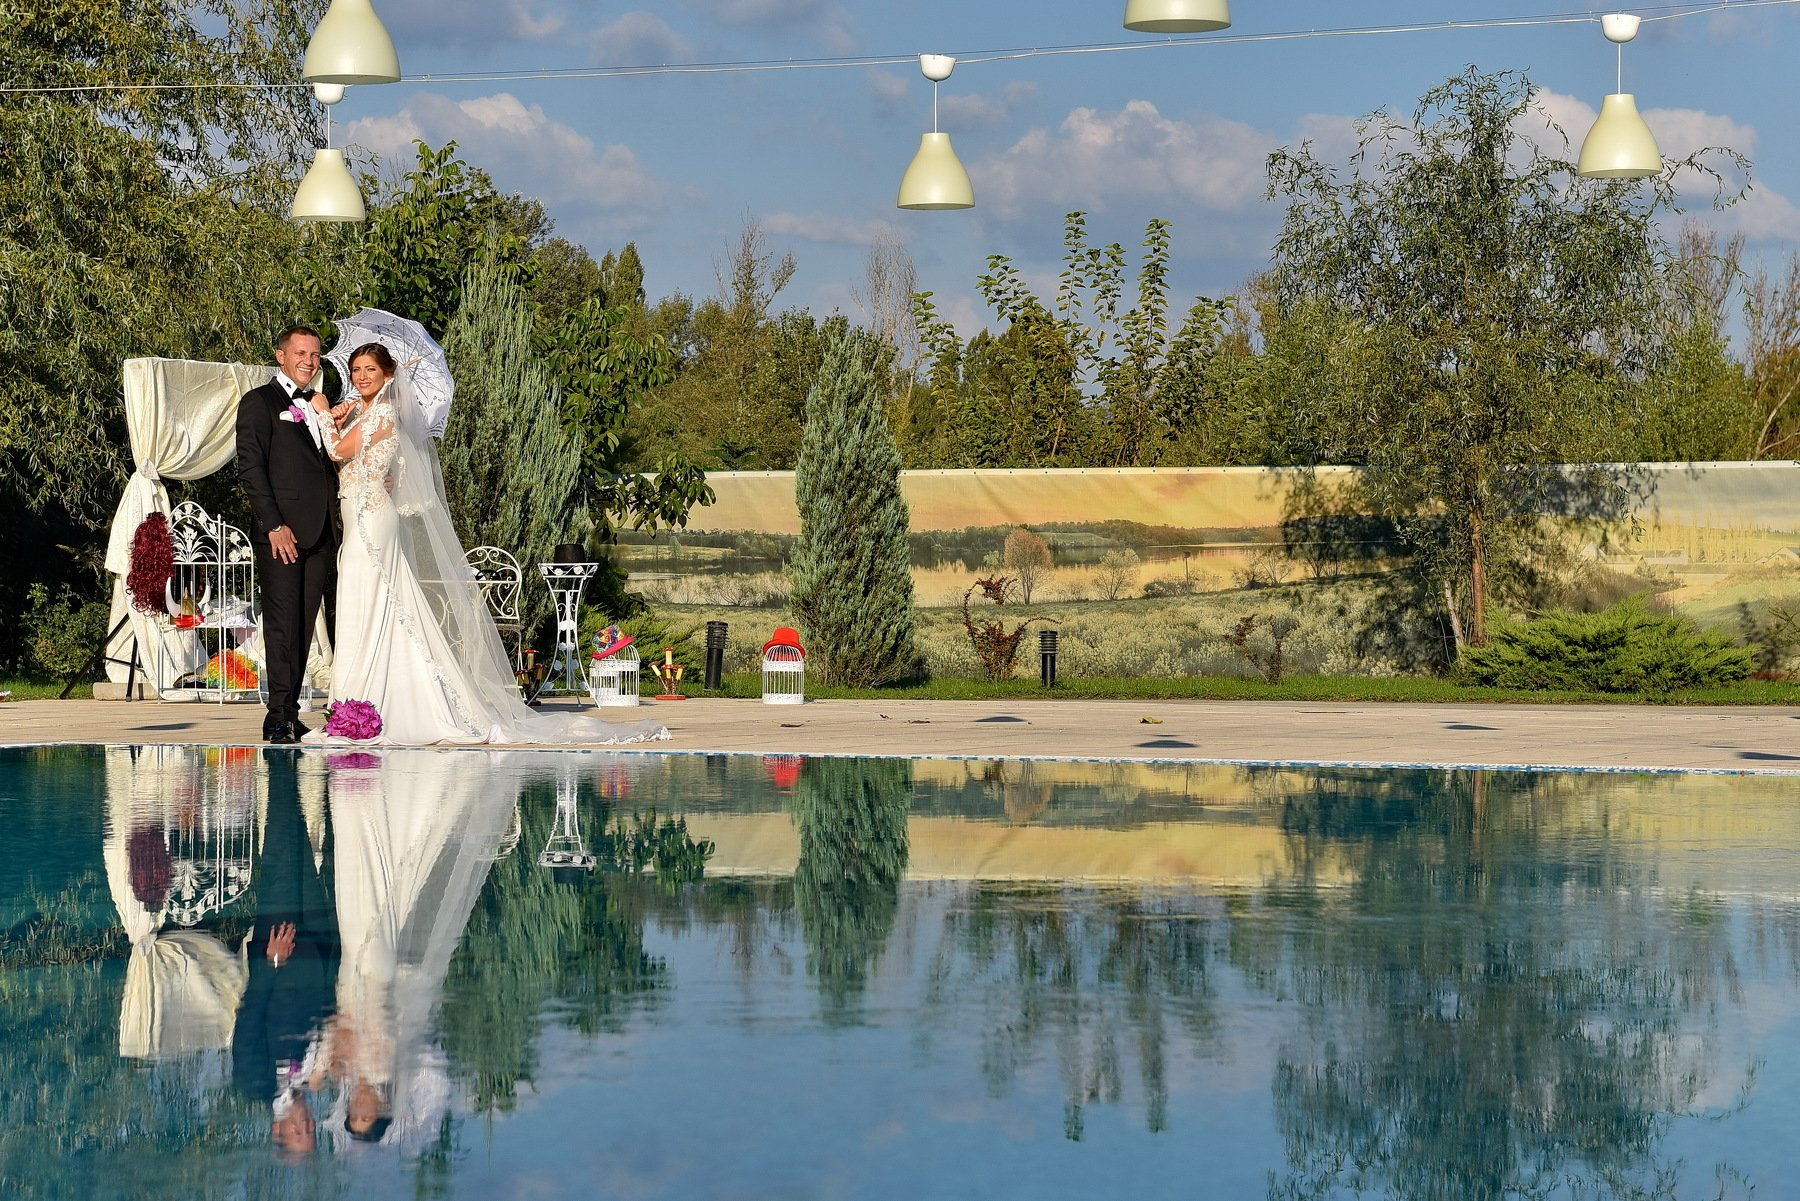 bride, groom, nature, sky, clouds, colors, married, reflection, water, Sorin Lazar Photography